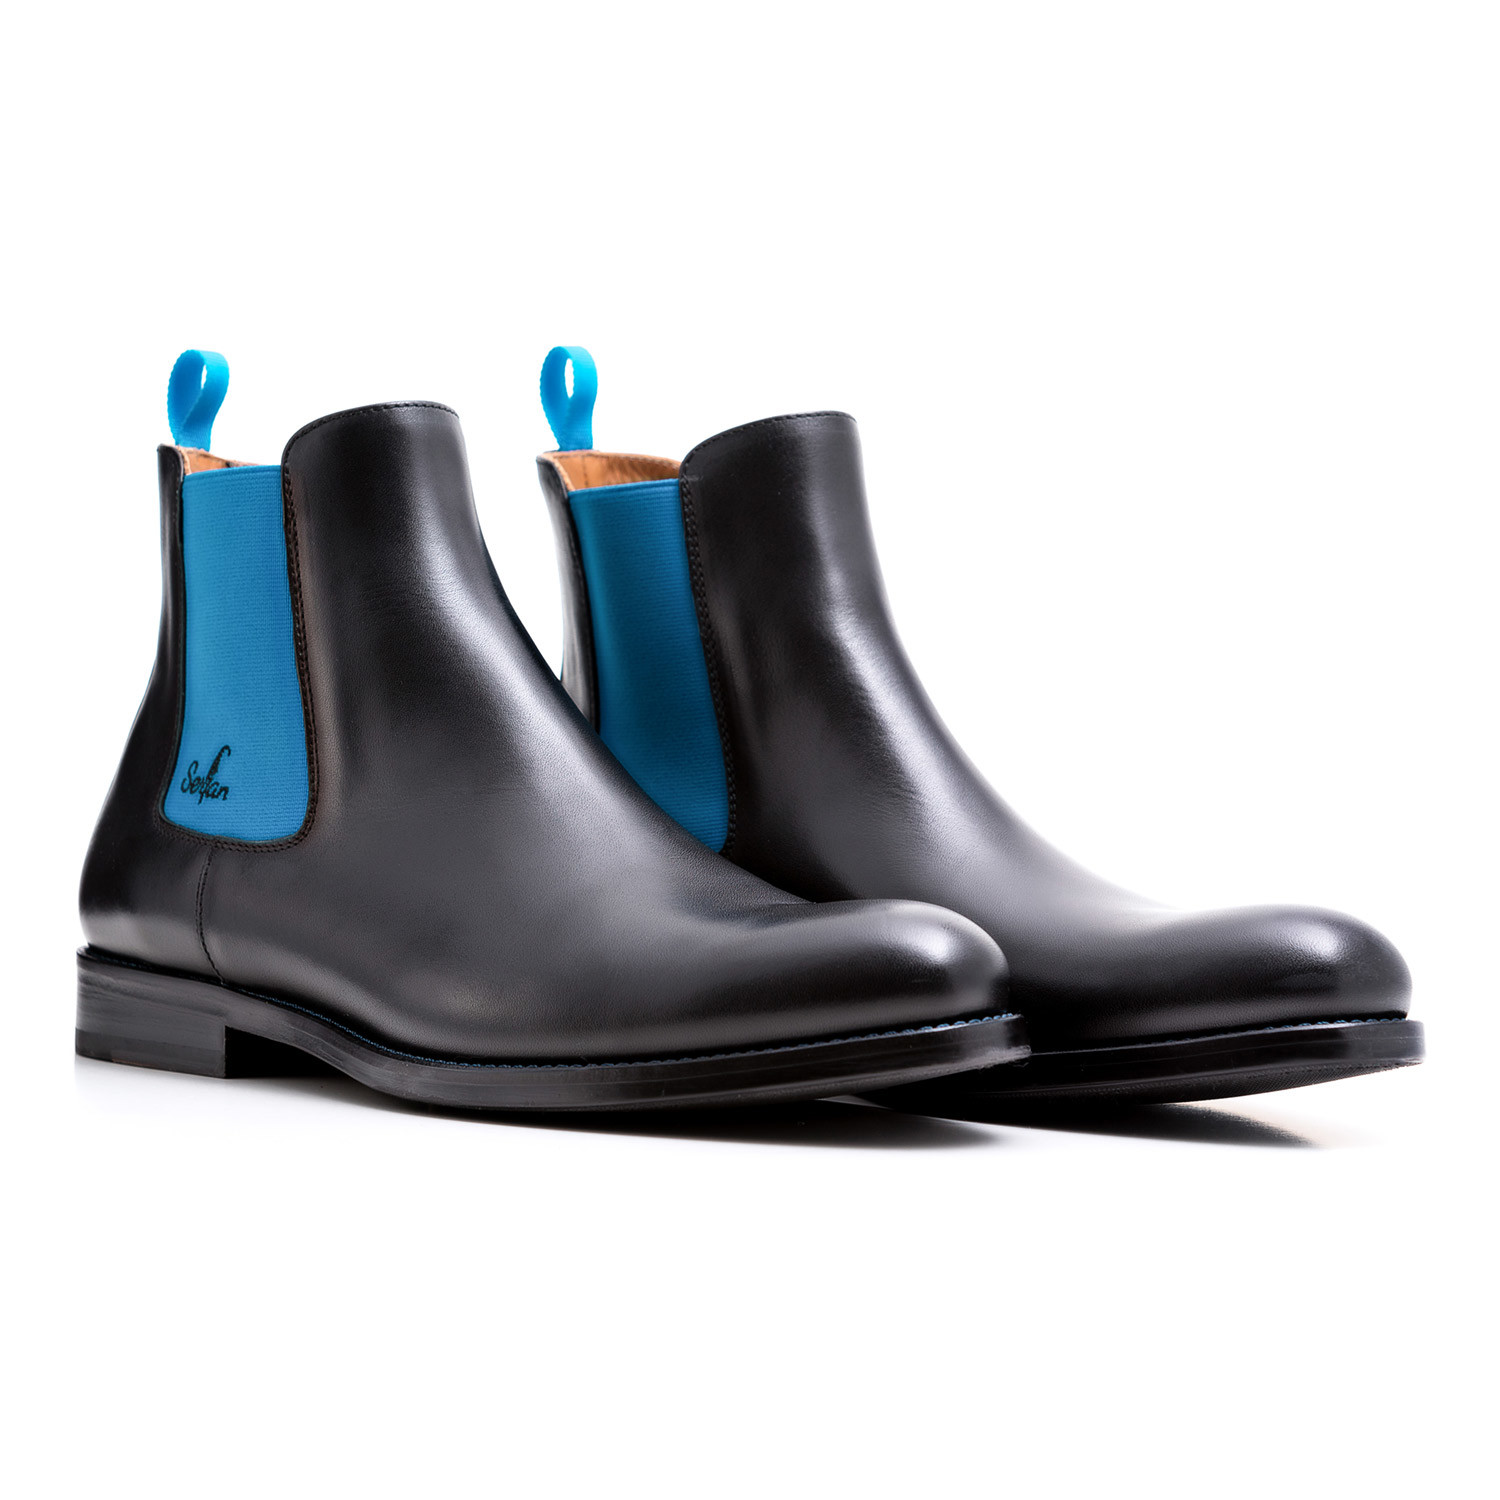 7b31819a4f88 Calf Leather Chelsea Boots    Black + Blue (Euro  39) - Serfan ...